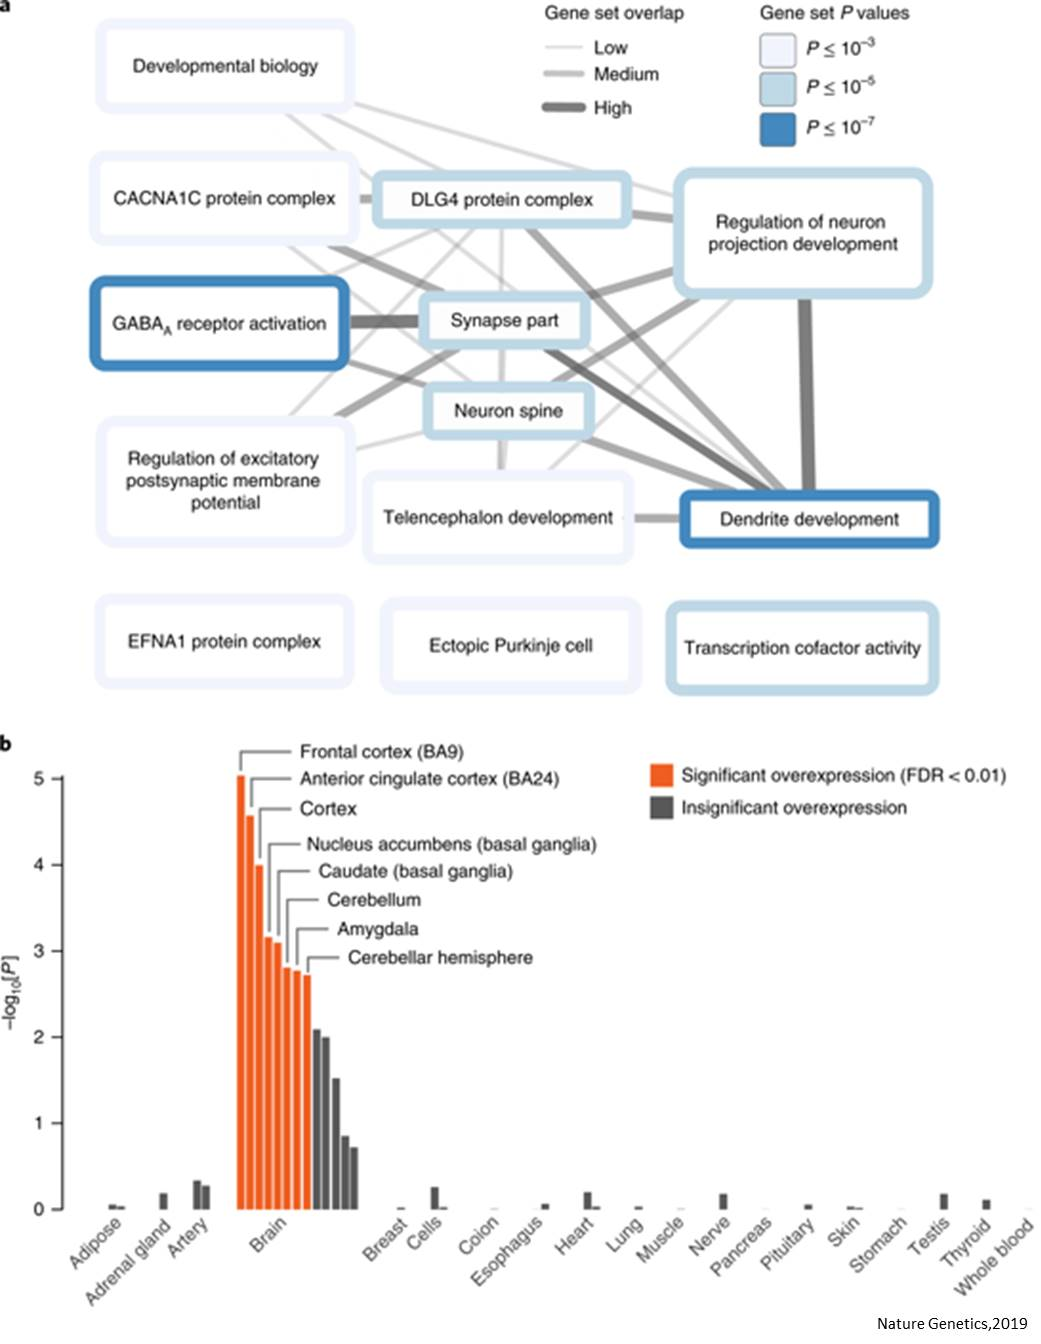 Genes associated with risk tolerance and risky behaviors